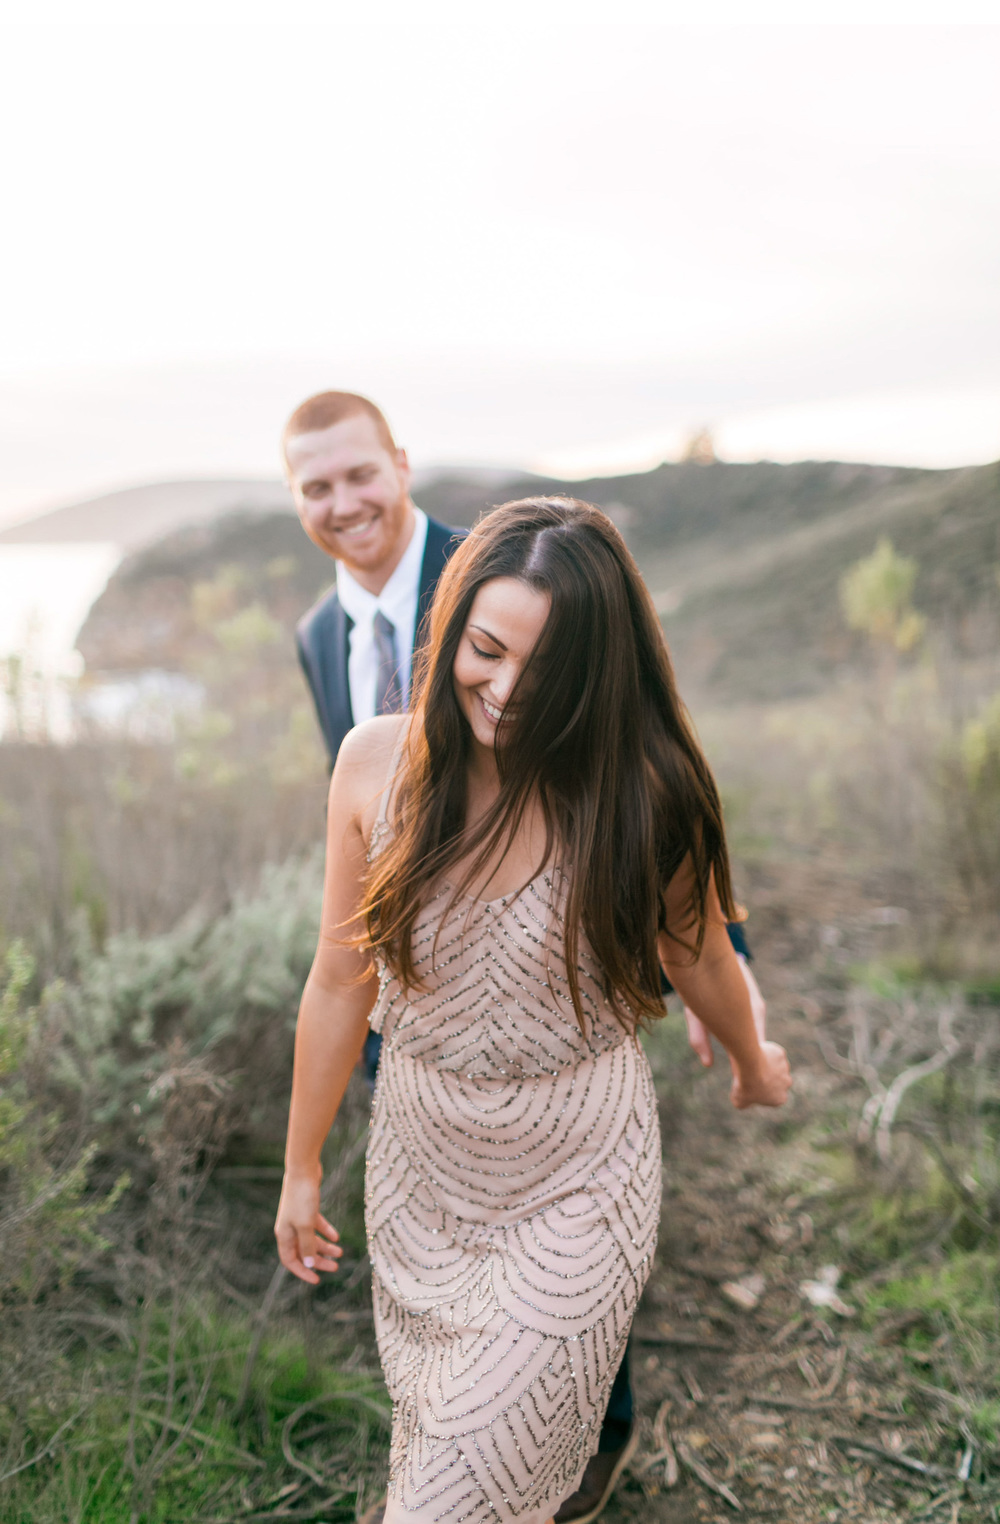 Southern_California_Wedding_Photographer_Natalie_Schutt_Photography_01.jpg